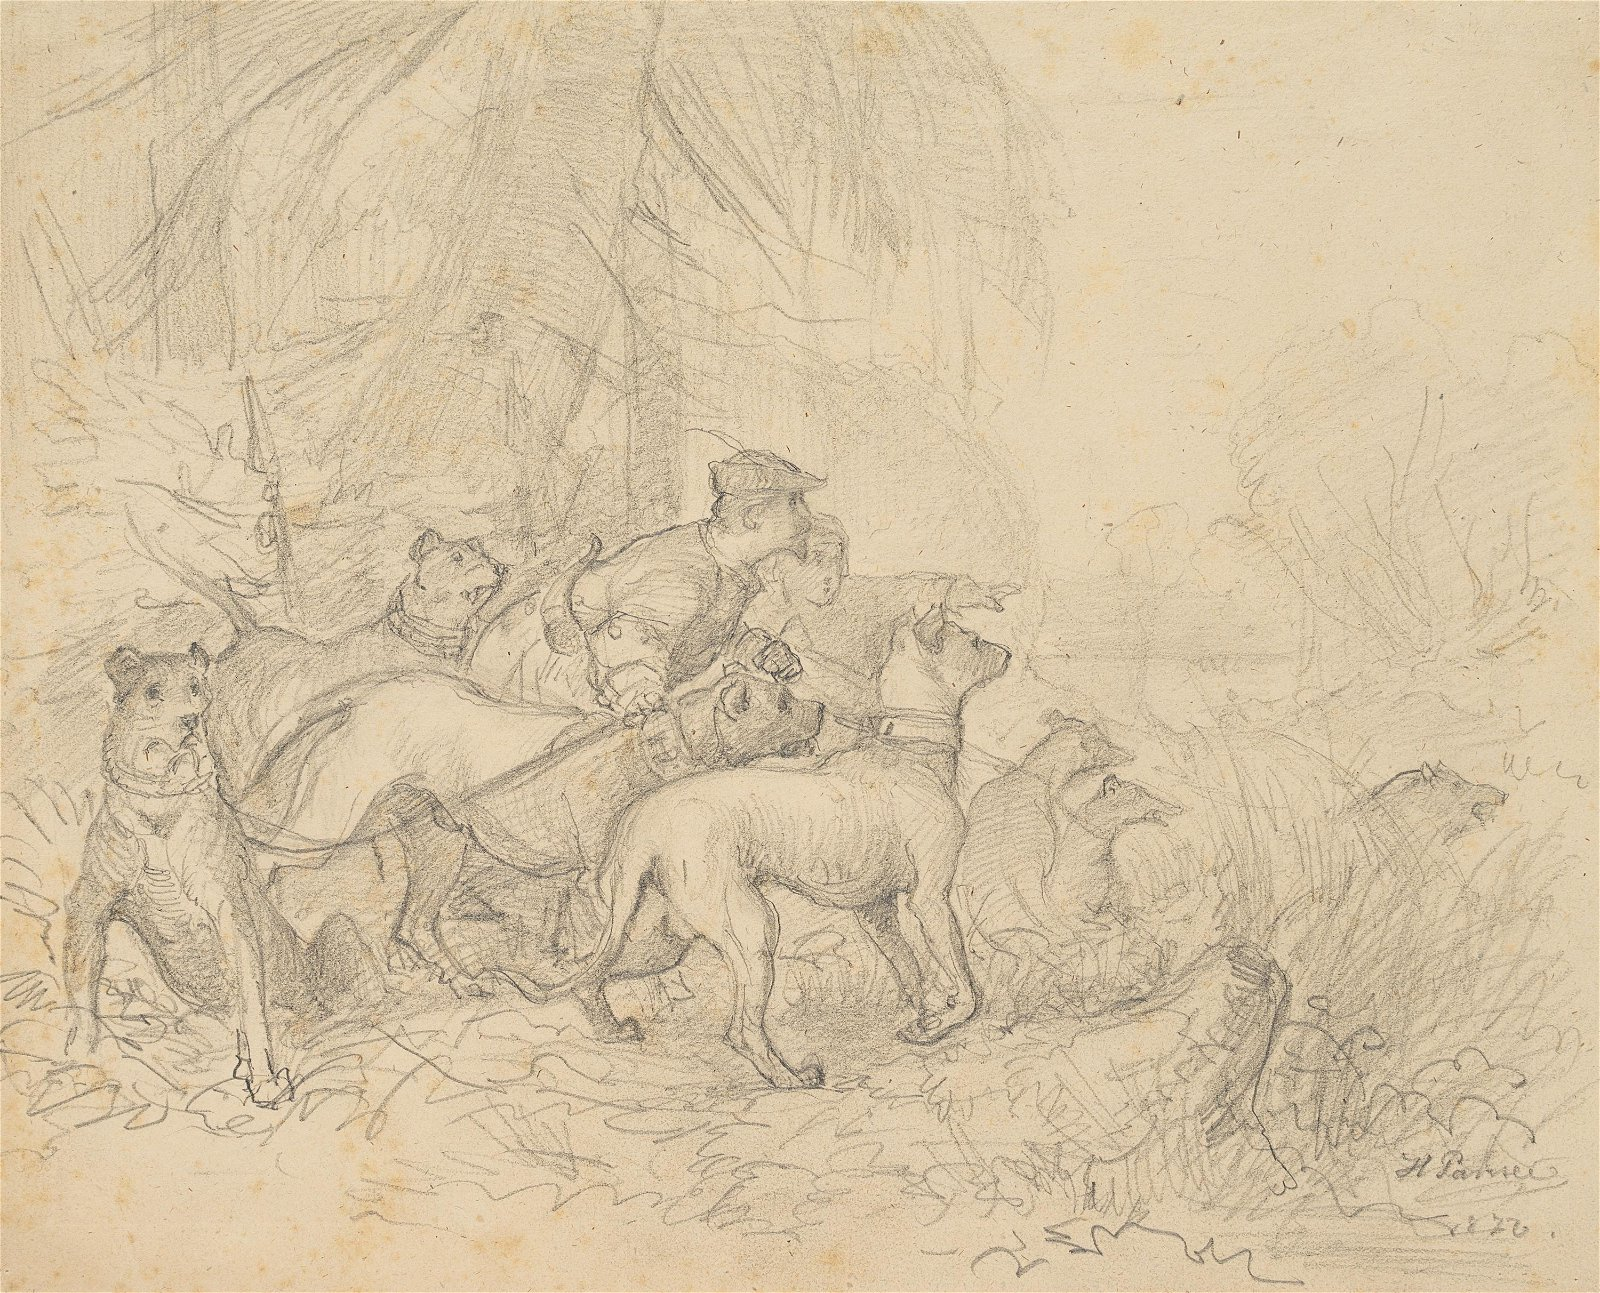 H.PANSEE(*1840), Hunter with a pack of hunting dogs,